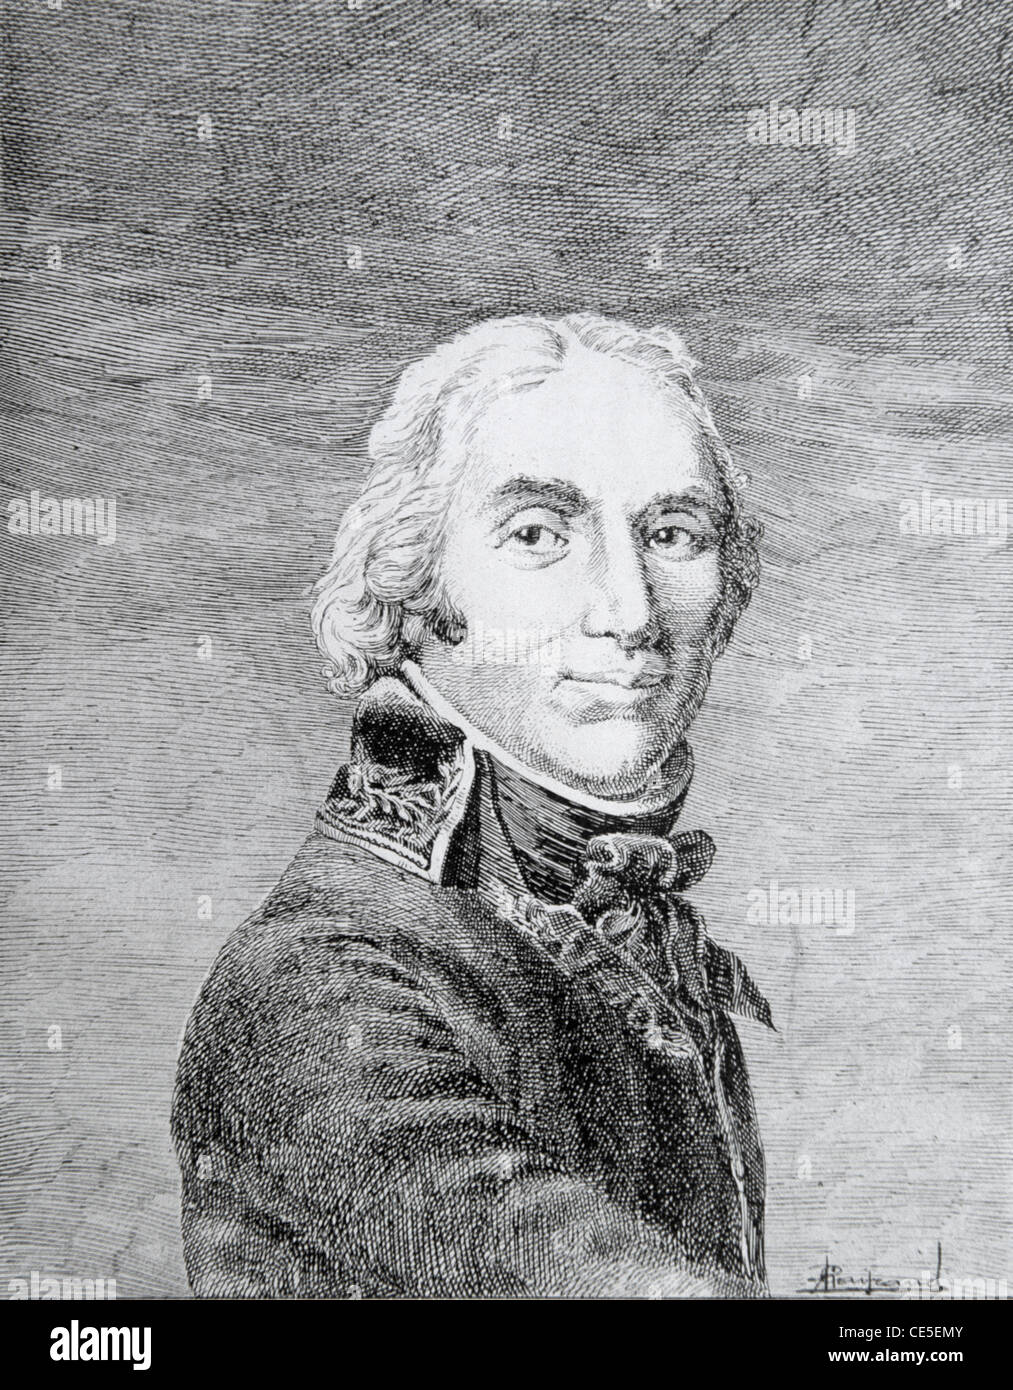 Portrait of Andre Massena, French General or Field Marshal (1758-1817) during revolutionary & Napoleonic Wars. Vintage Illustration or Engraving Stock Photo